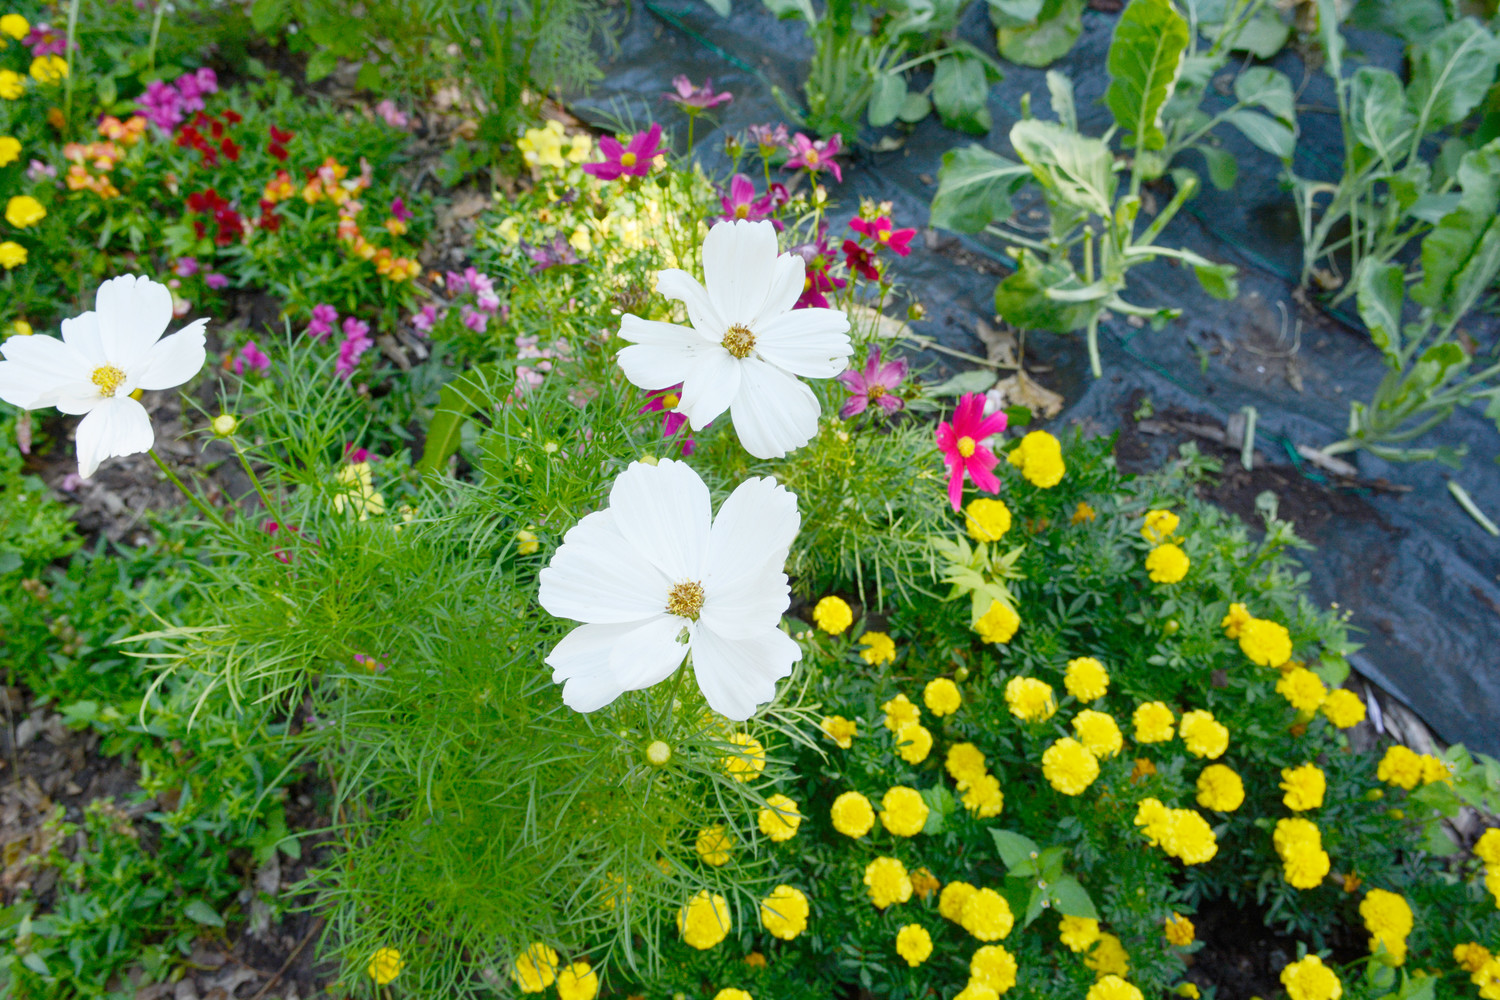 The Food for Others Garden is home to flowers such as white cosmos and yellow marigolds.